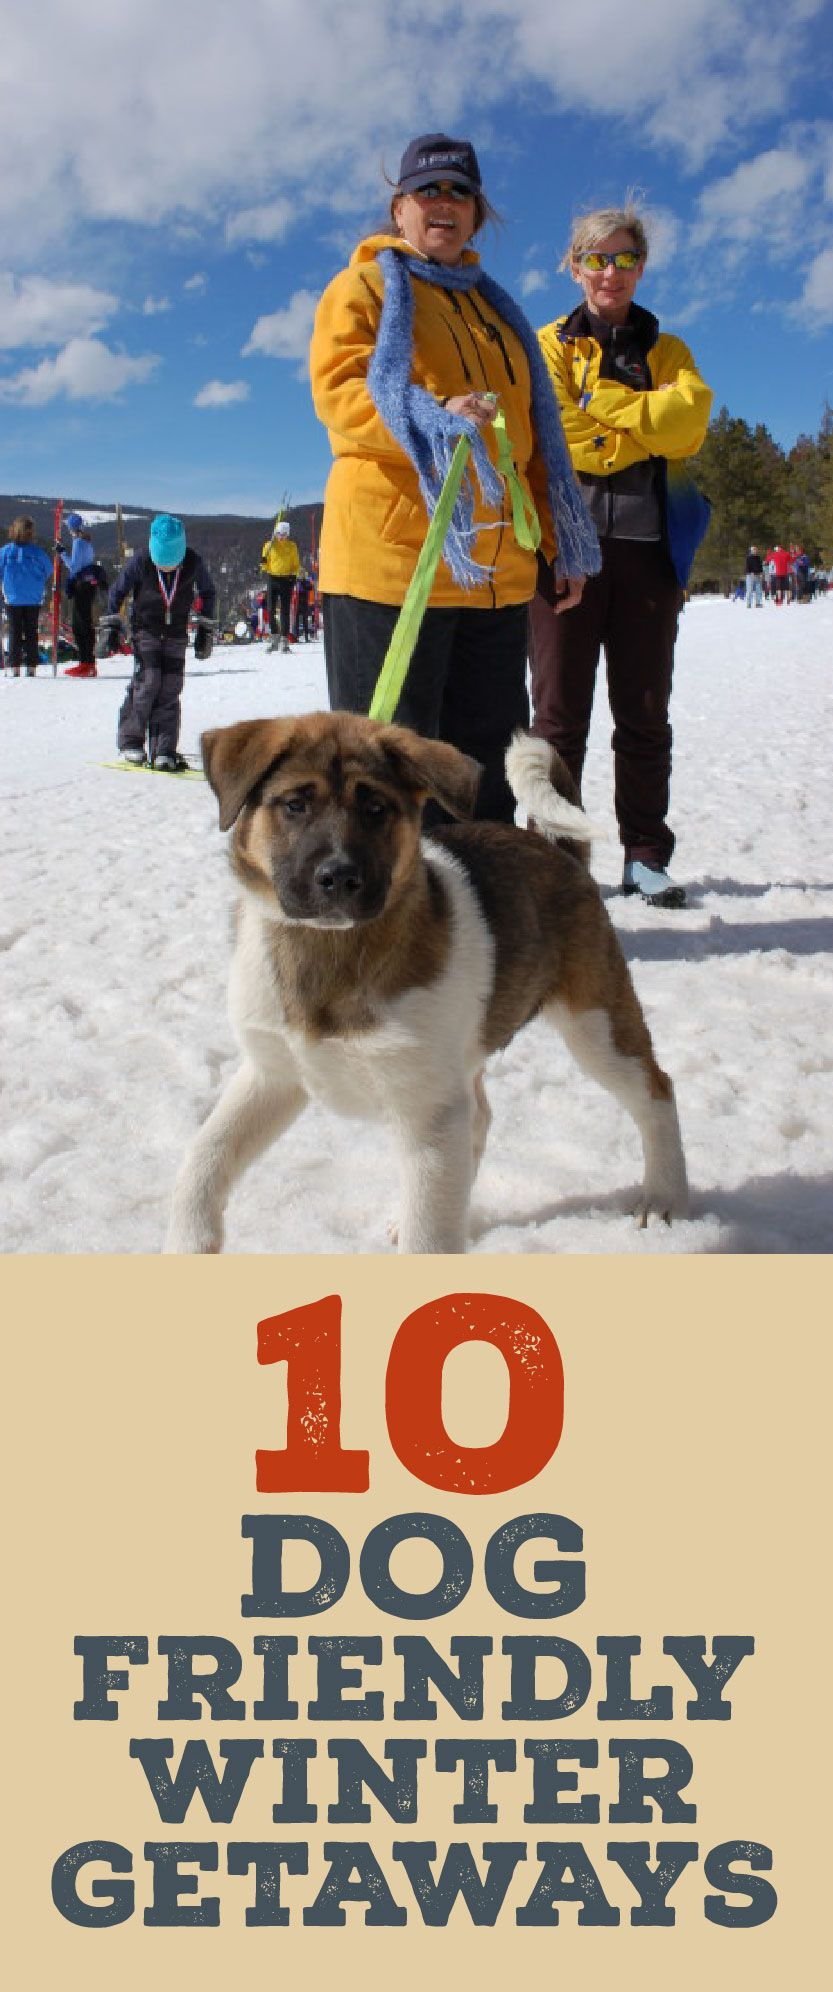 10 dog friendly winter getaways | pets are people too | pinterest